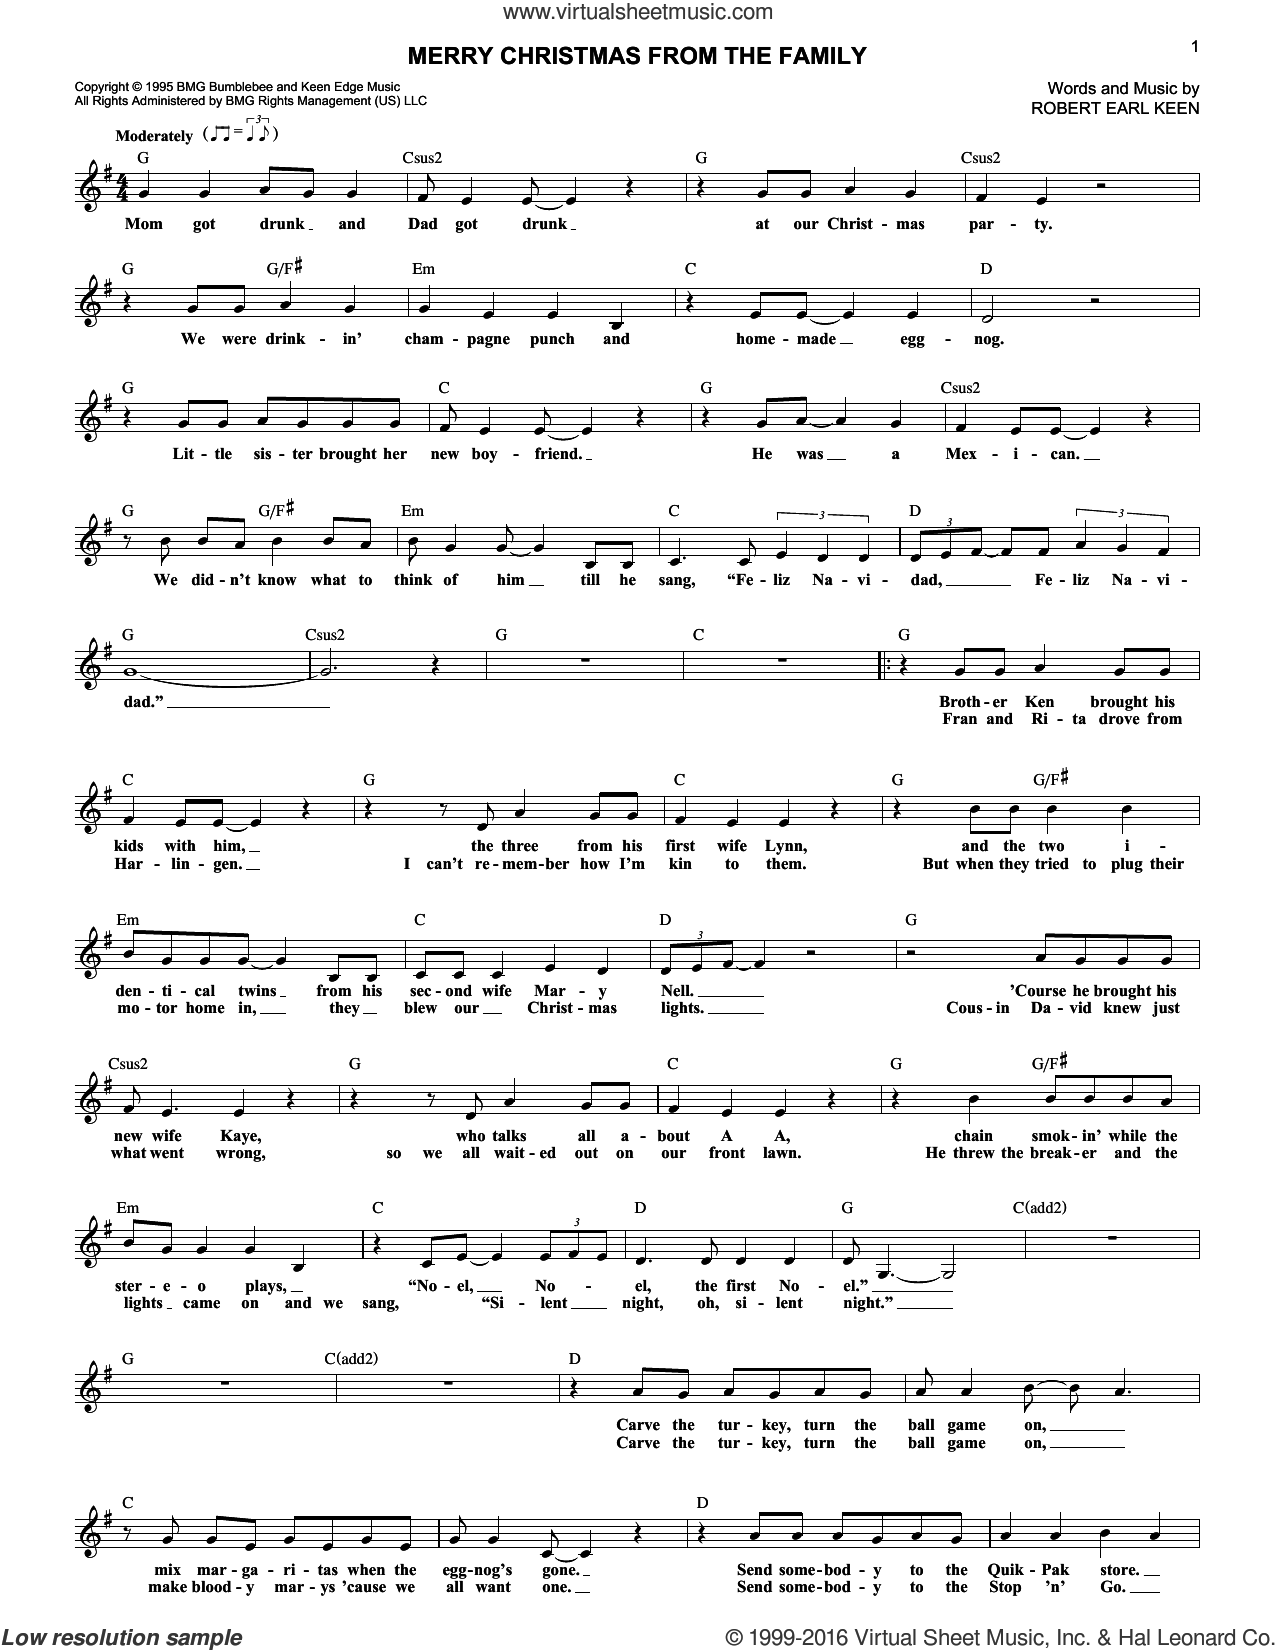 Merry Christmas From The Family sheet music for voice and other instruments (fake book) by Robert Earl Keen, intermediate skill level